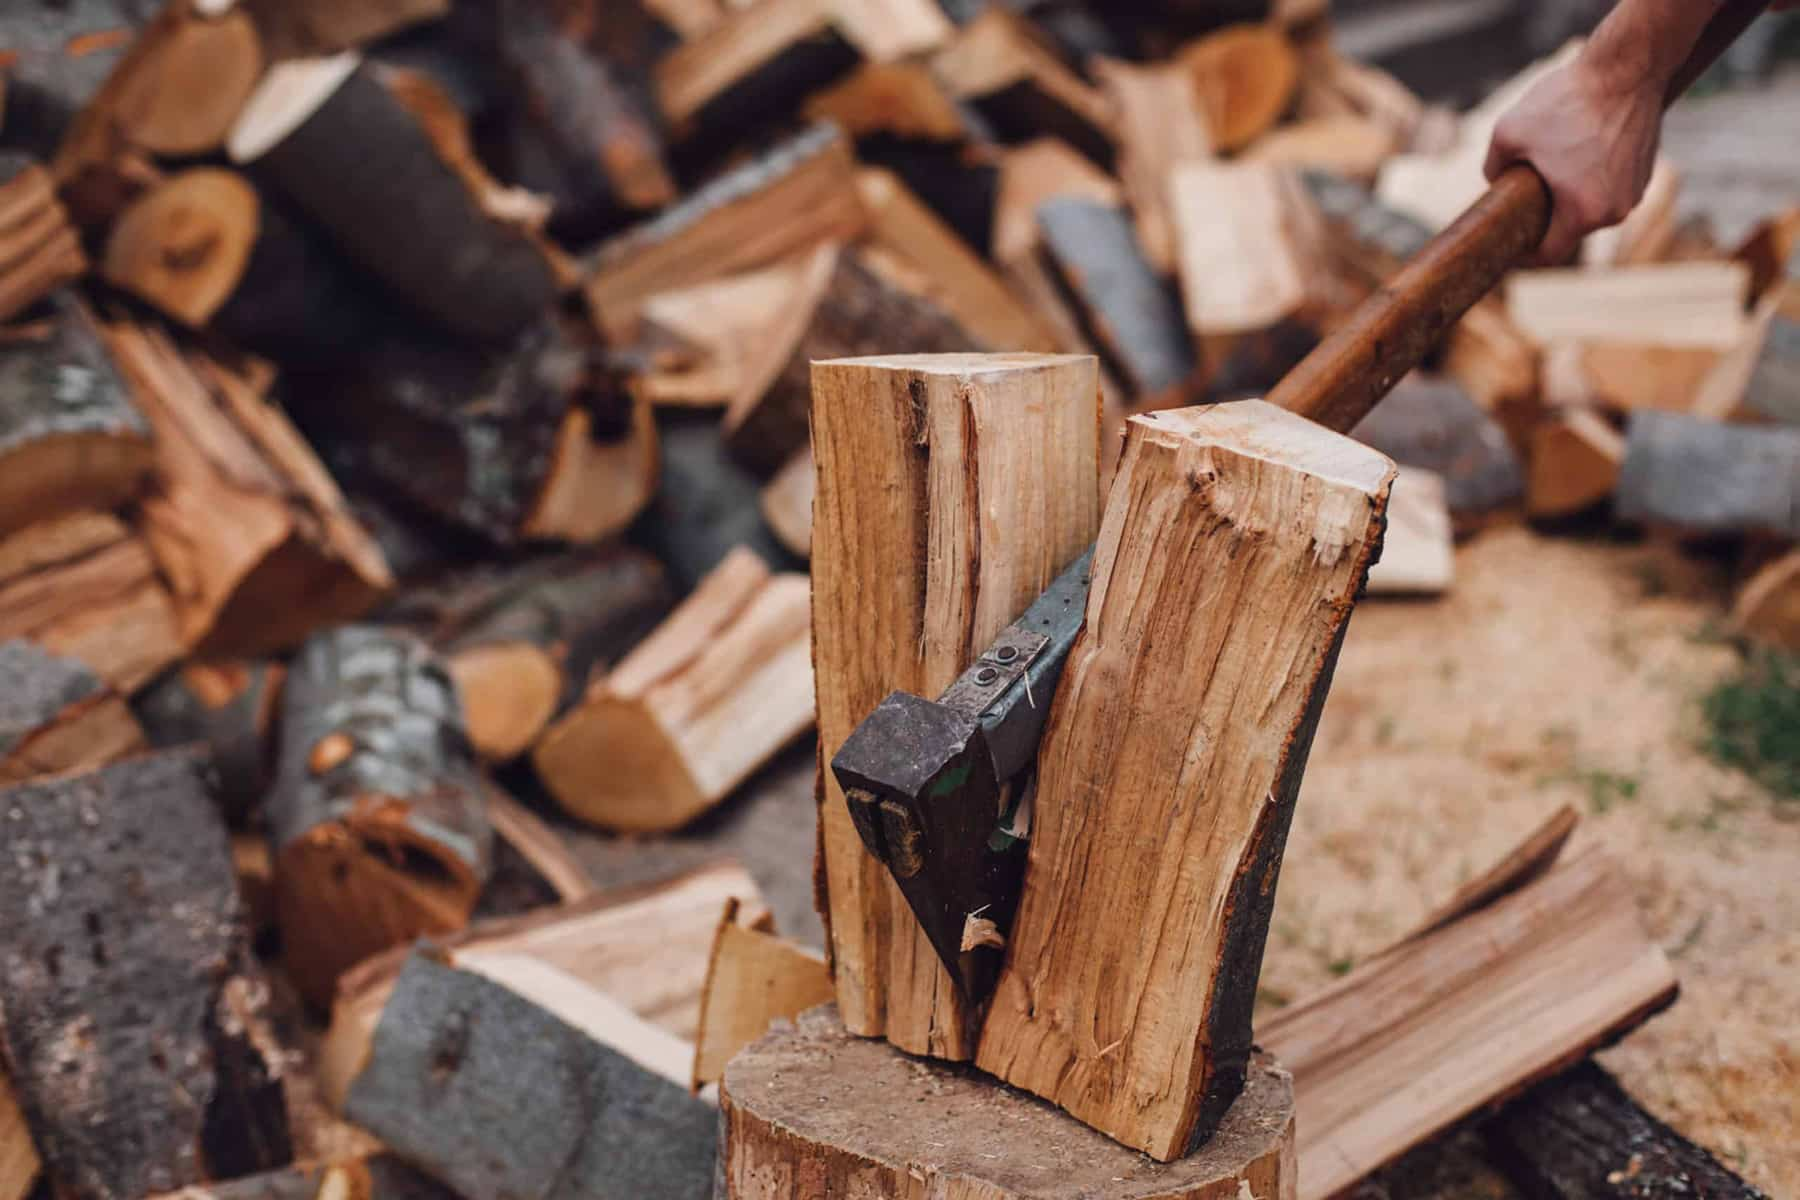 This is the cover photo for our Best Wood Splitting Axe article. It features an axe splitting a log with a pile of split wood in the background.